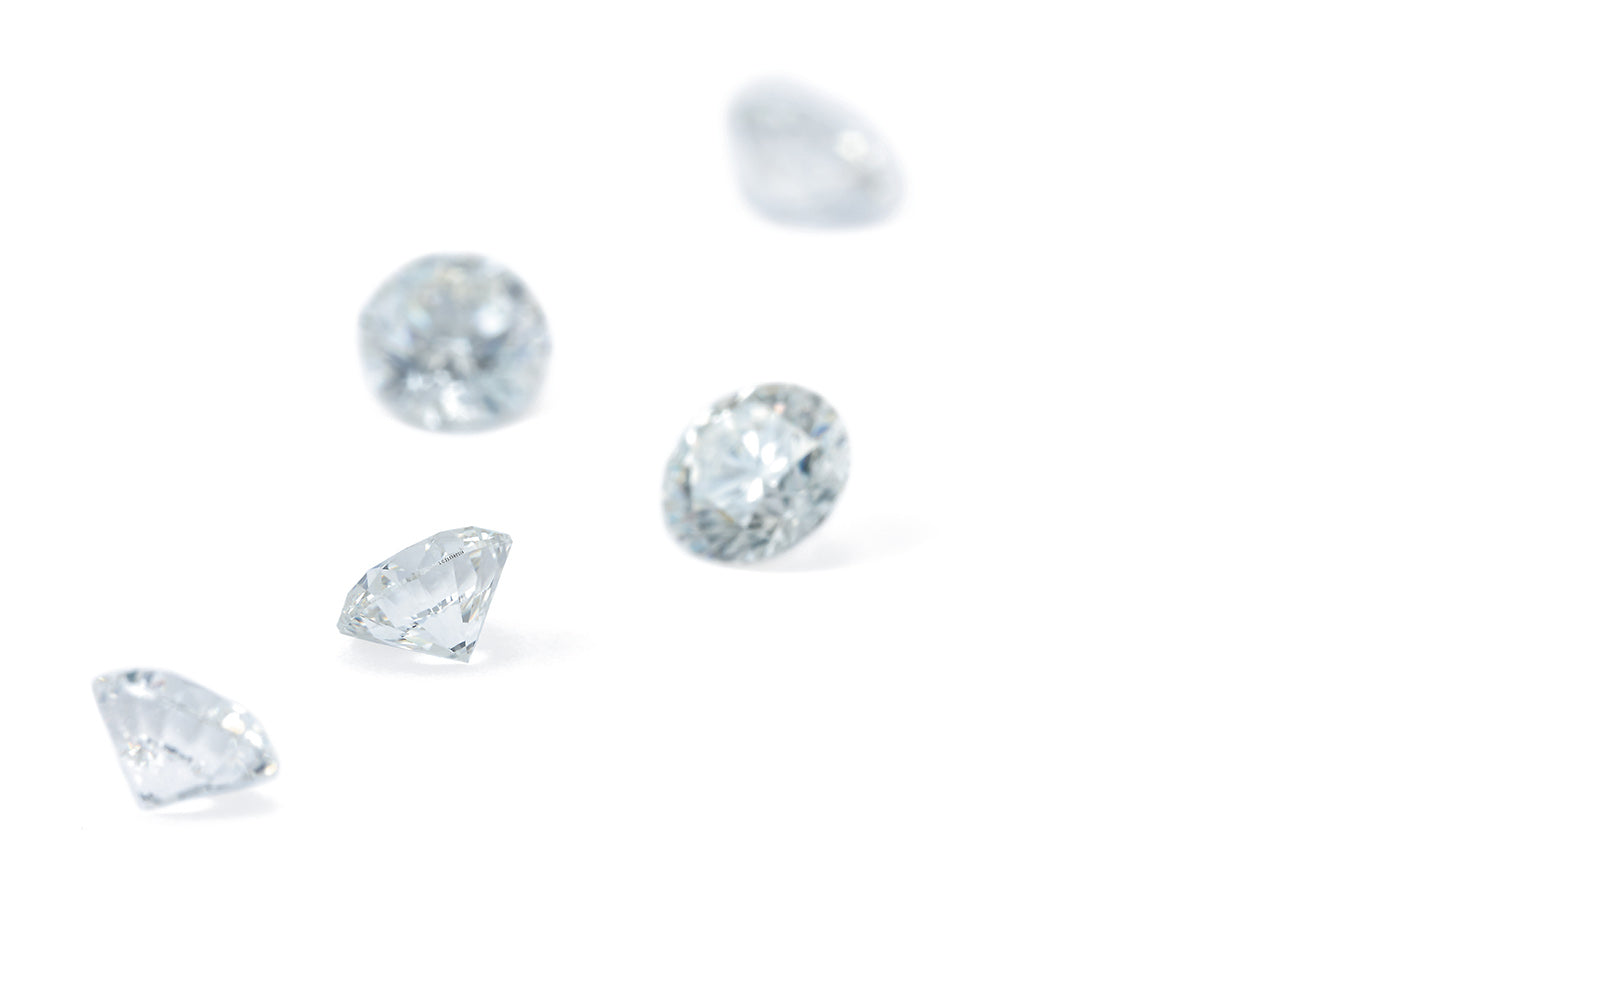 Soha Diamond Co. diamond to ore ratio